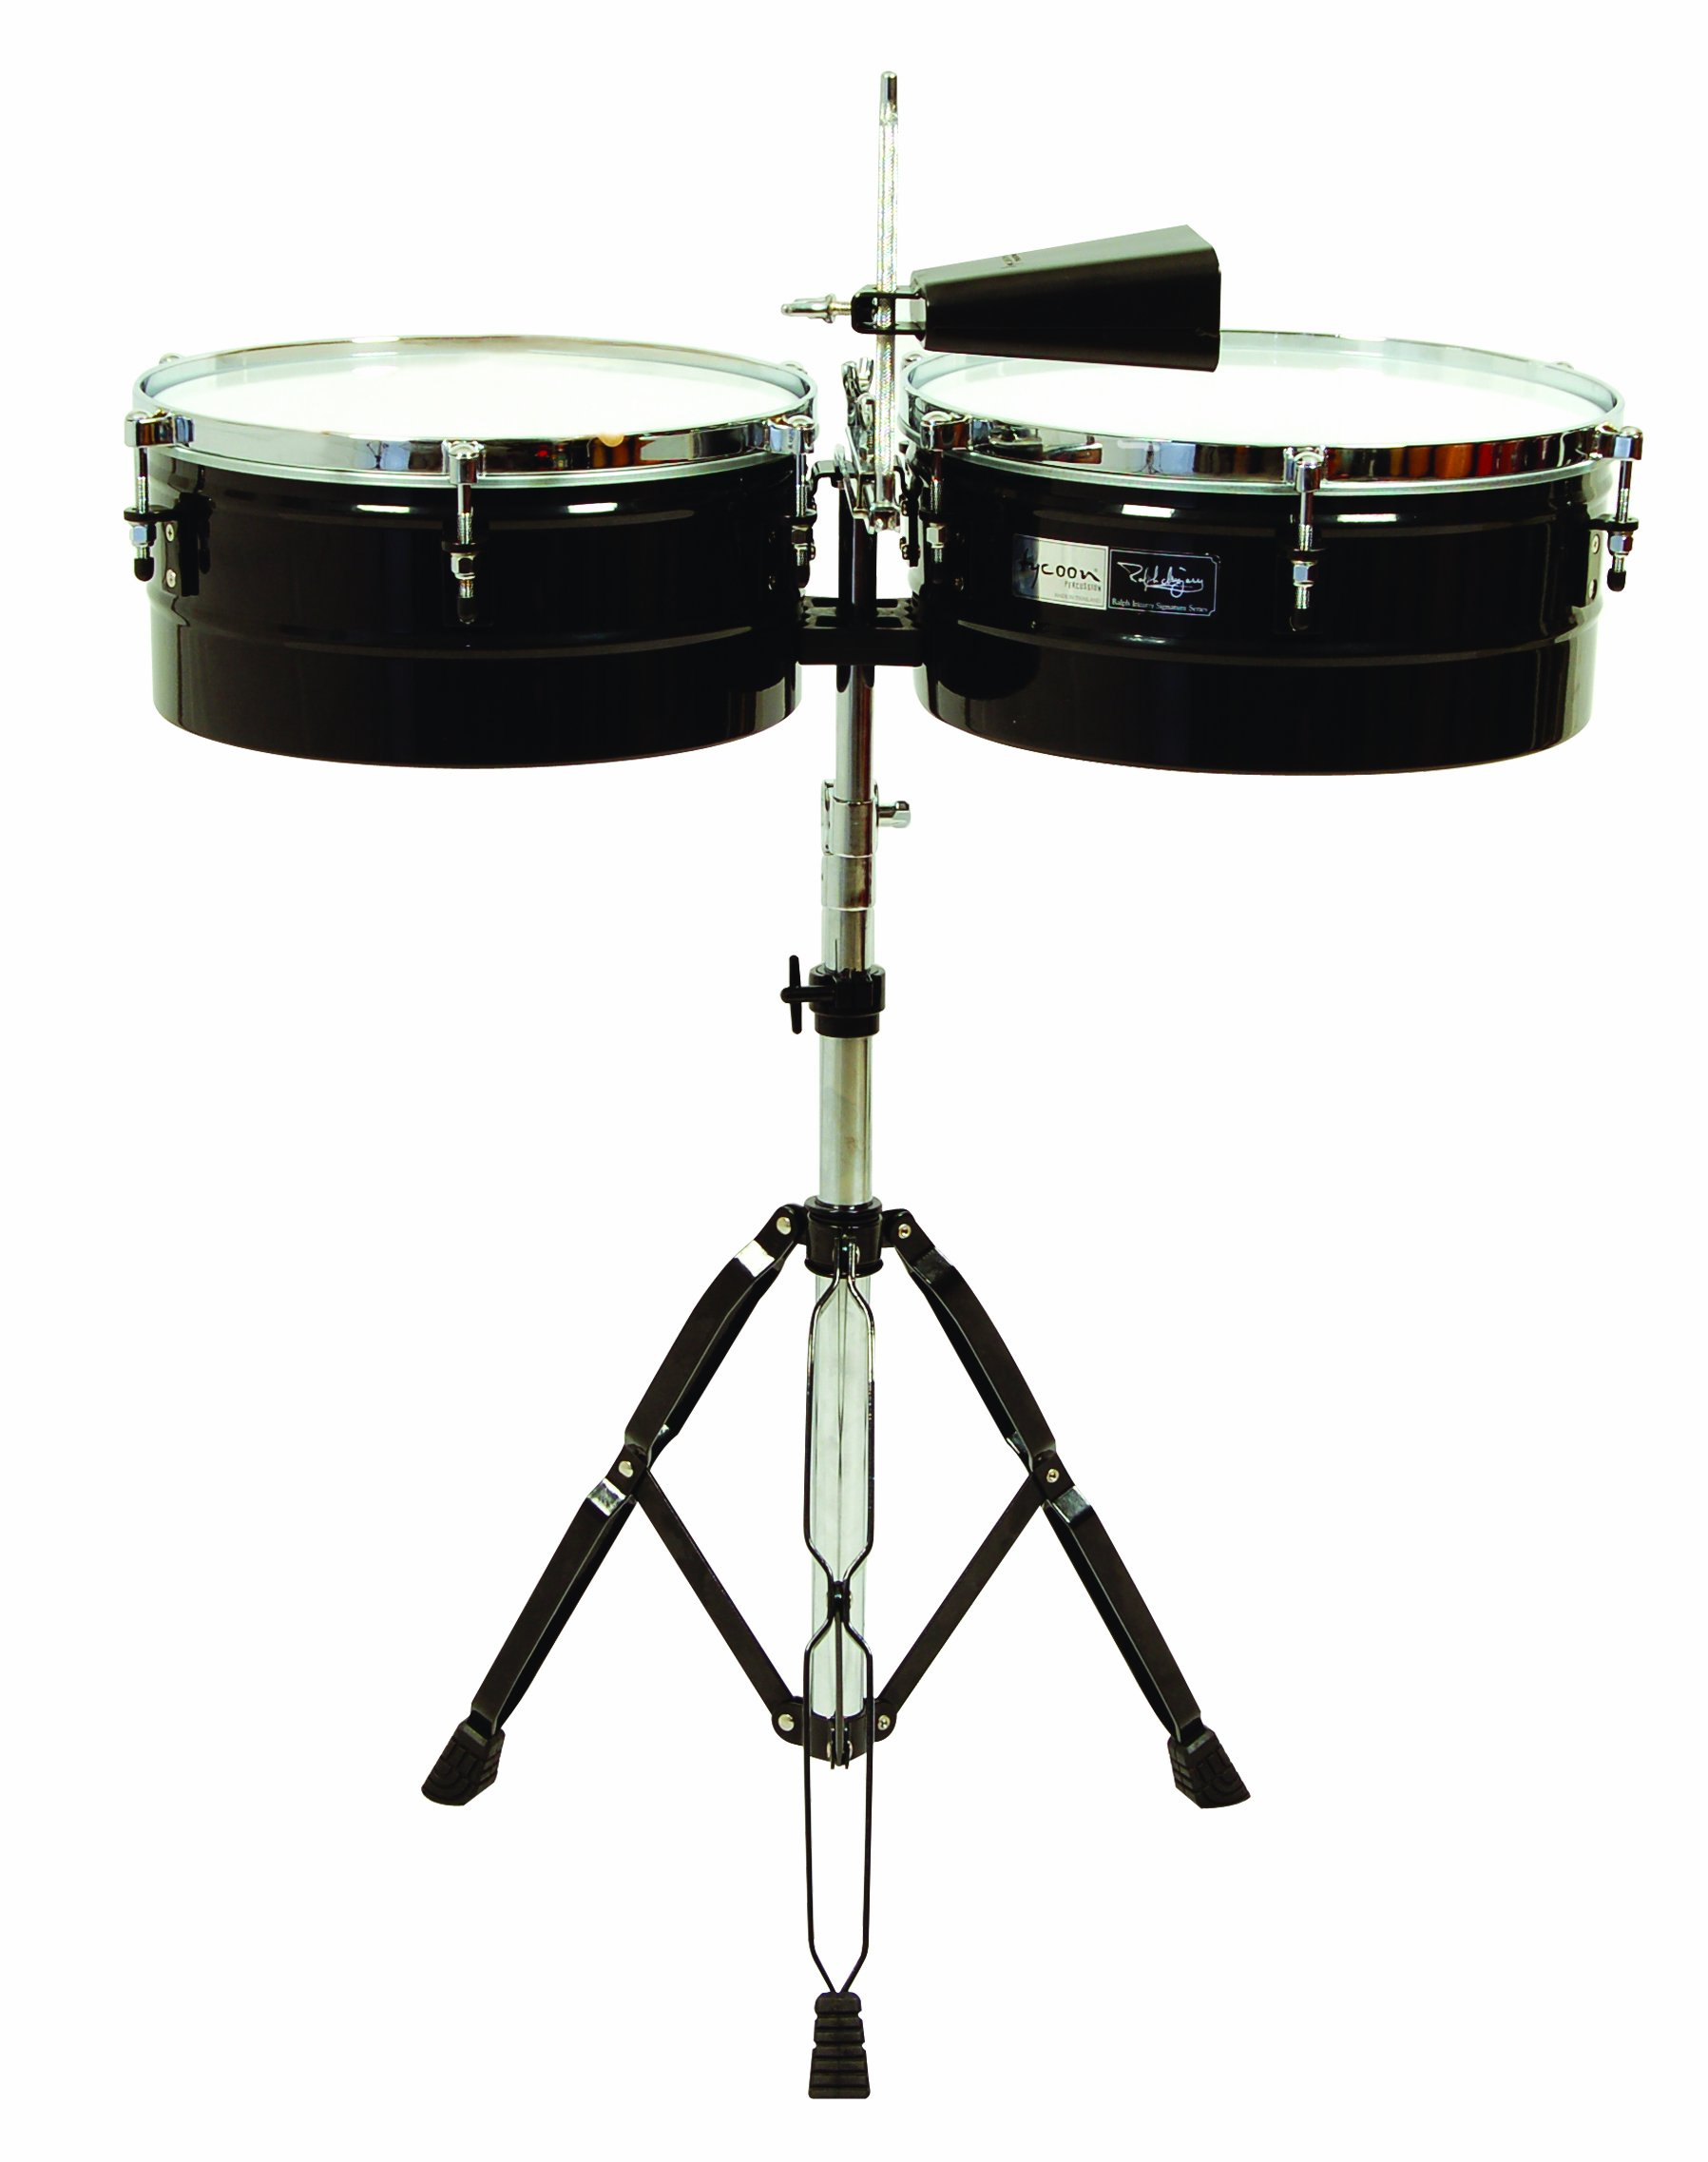 Tycoon Percussion 14 Inch & 15 Inch Ralph Irizarry Signature Series Timbales by Tycoon Percussion